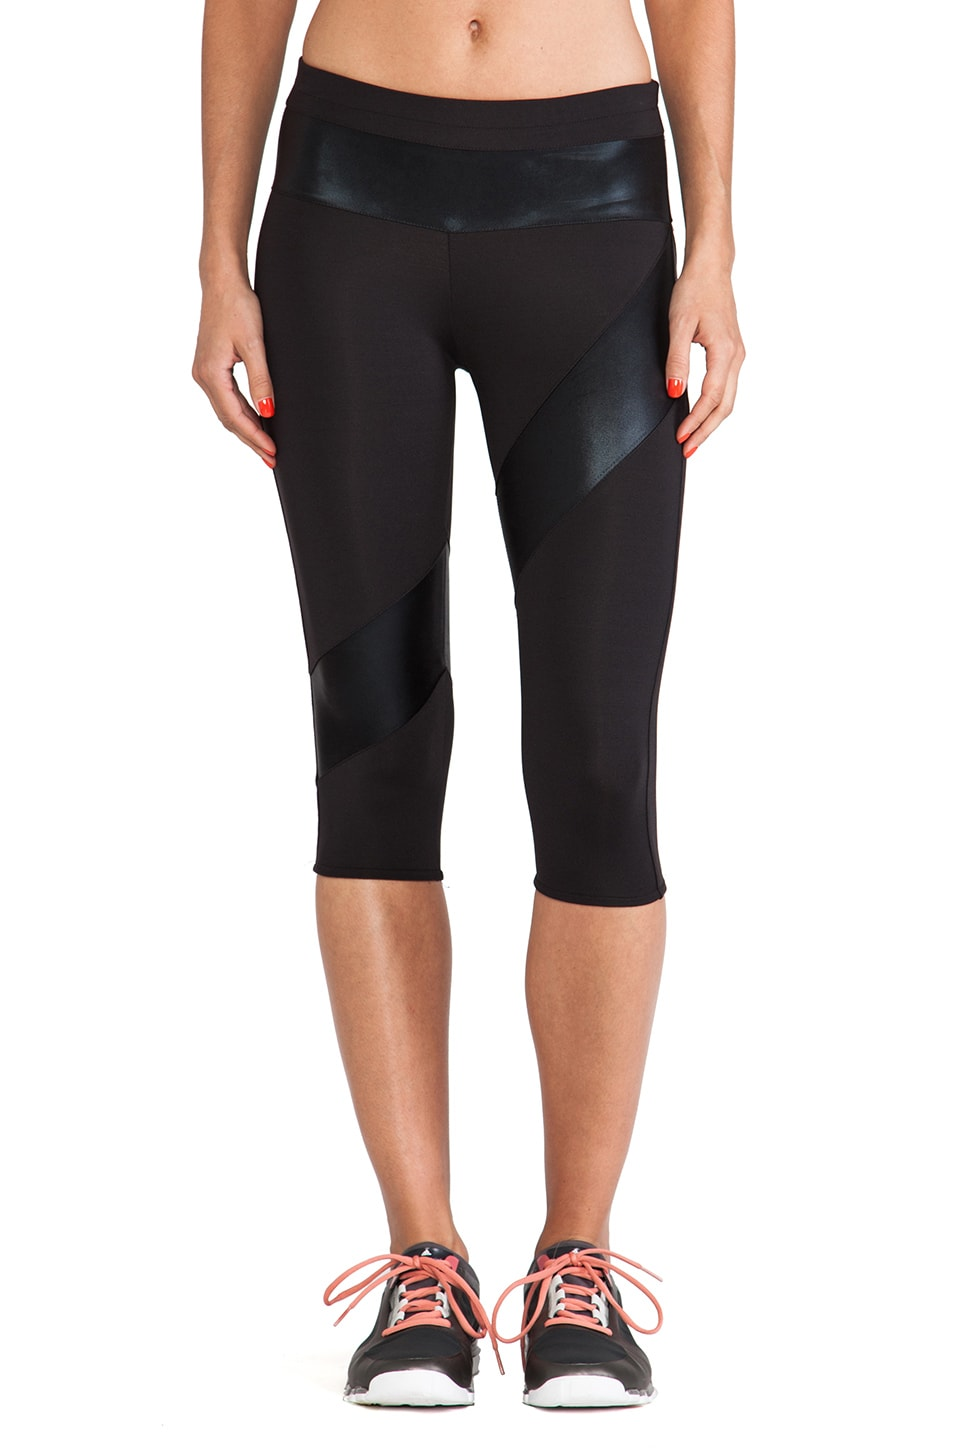 Norma Kamali Spliced Diagonal Capri Legging in Black & Black Foil